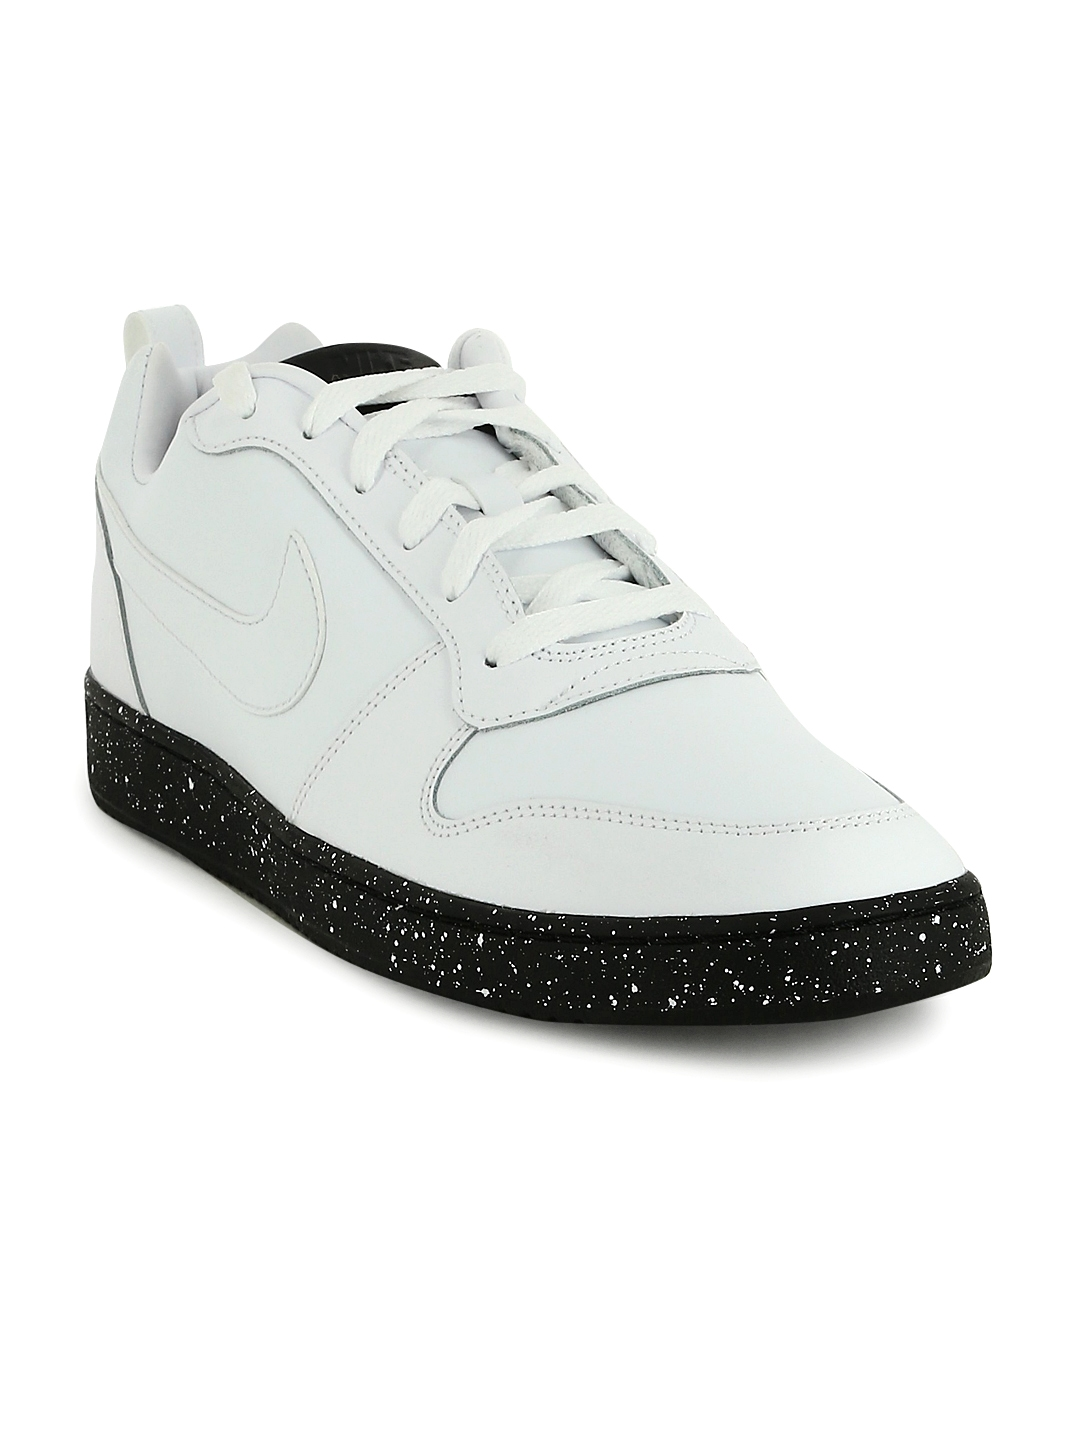 official photos 440ac 7948b Nike Men White COURT BOROUGH LOW SE Leather Sneakers